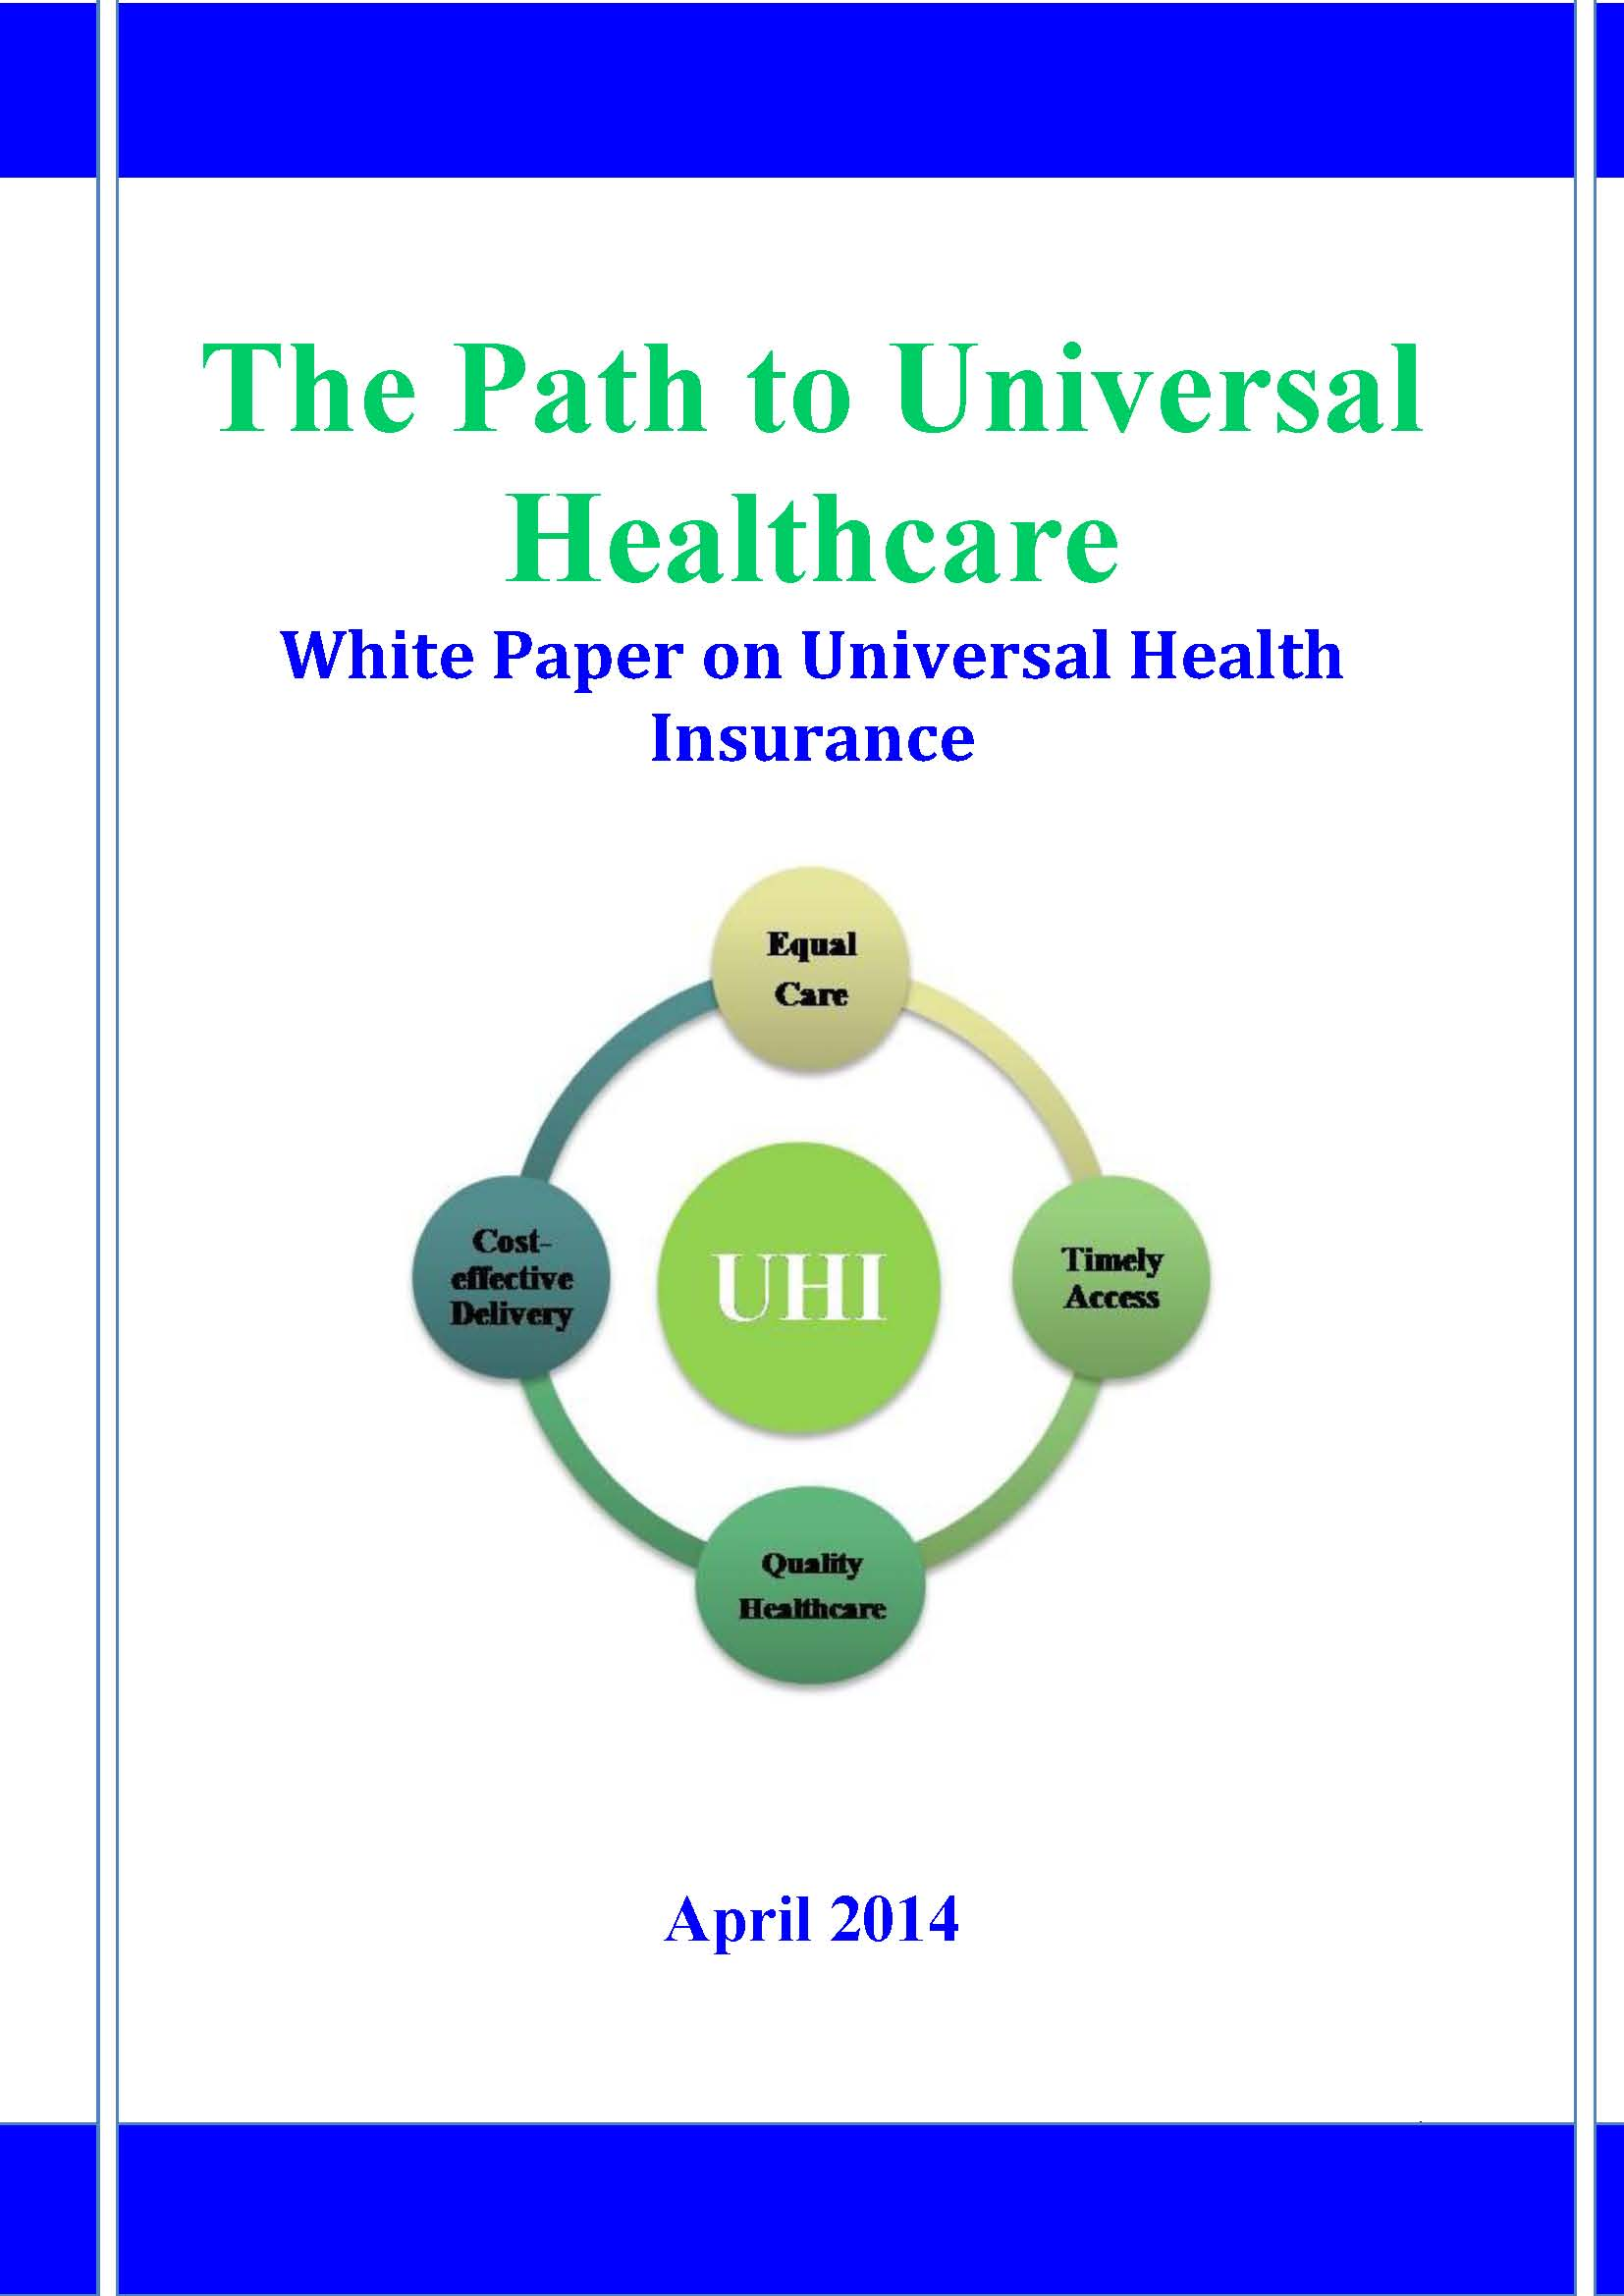 research paper on universal health care in us